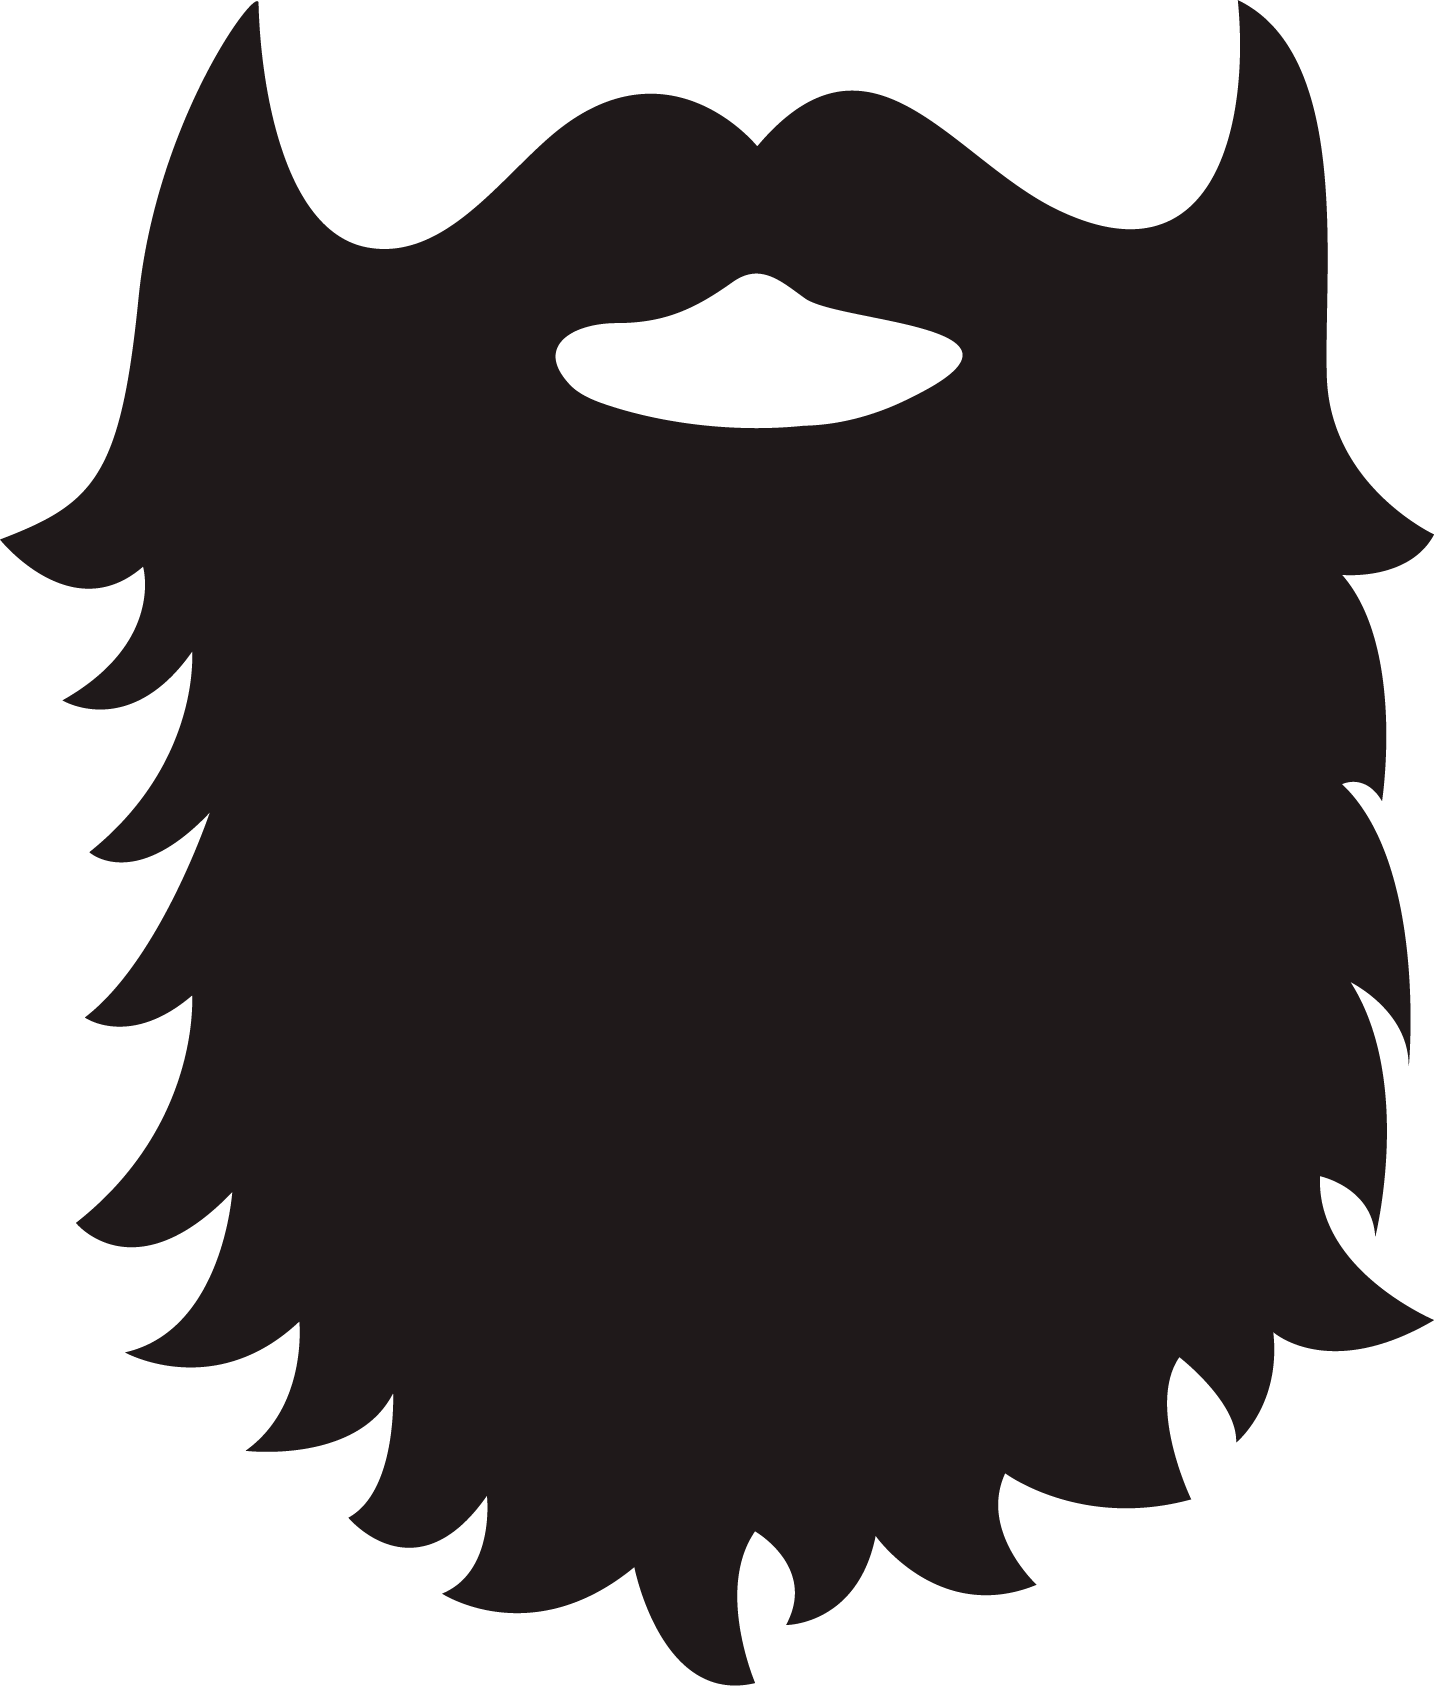 Light beard clipart